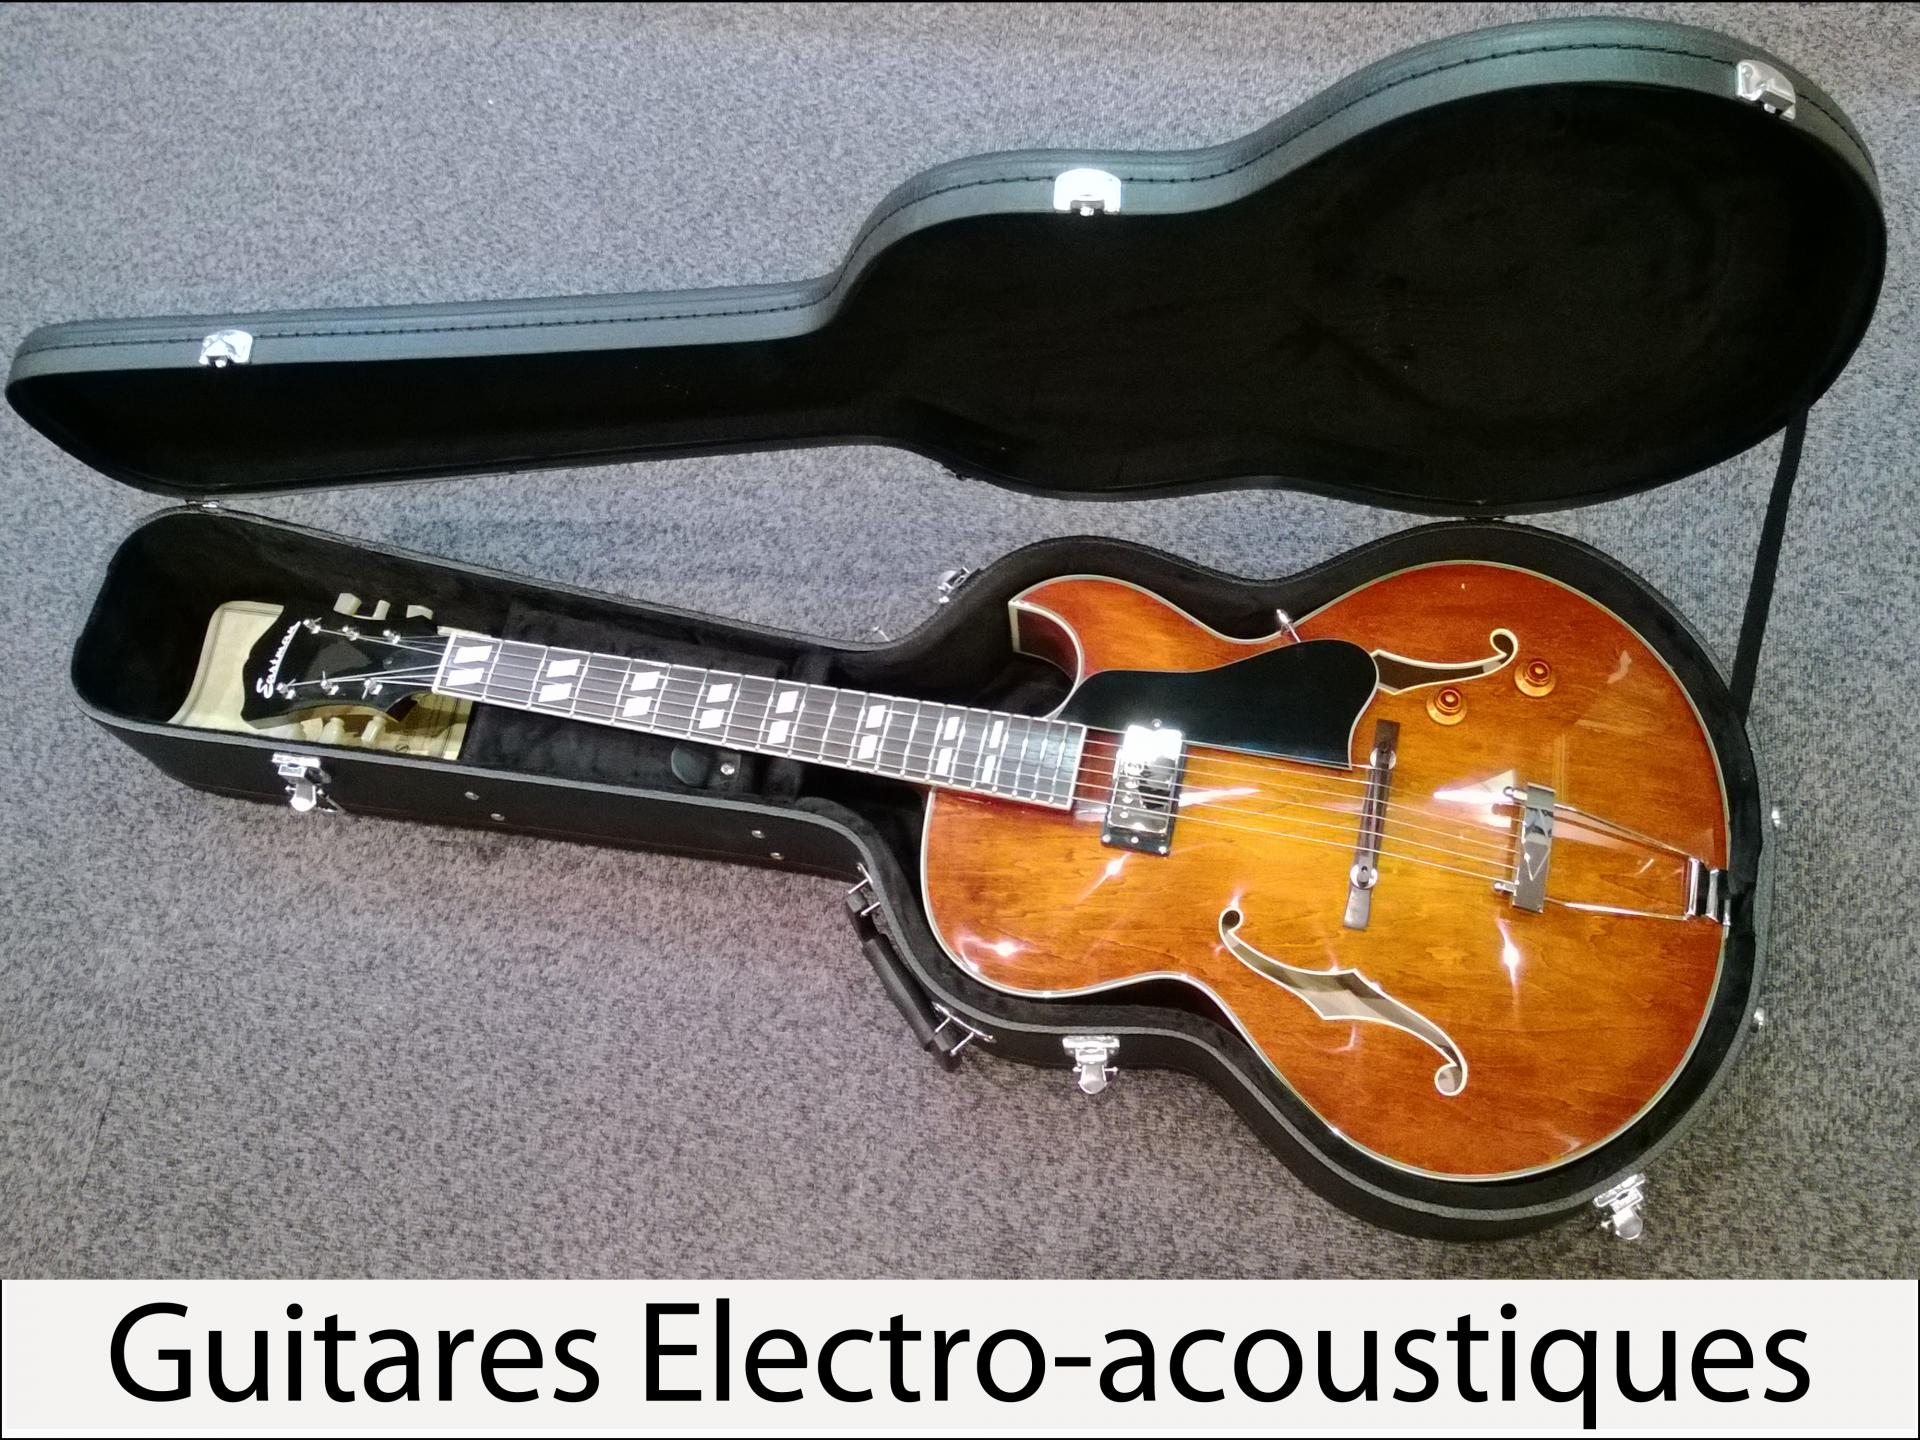 Acceuil carre guitares electro